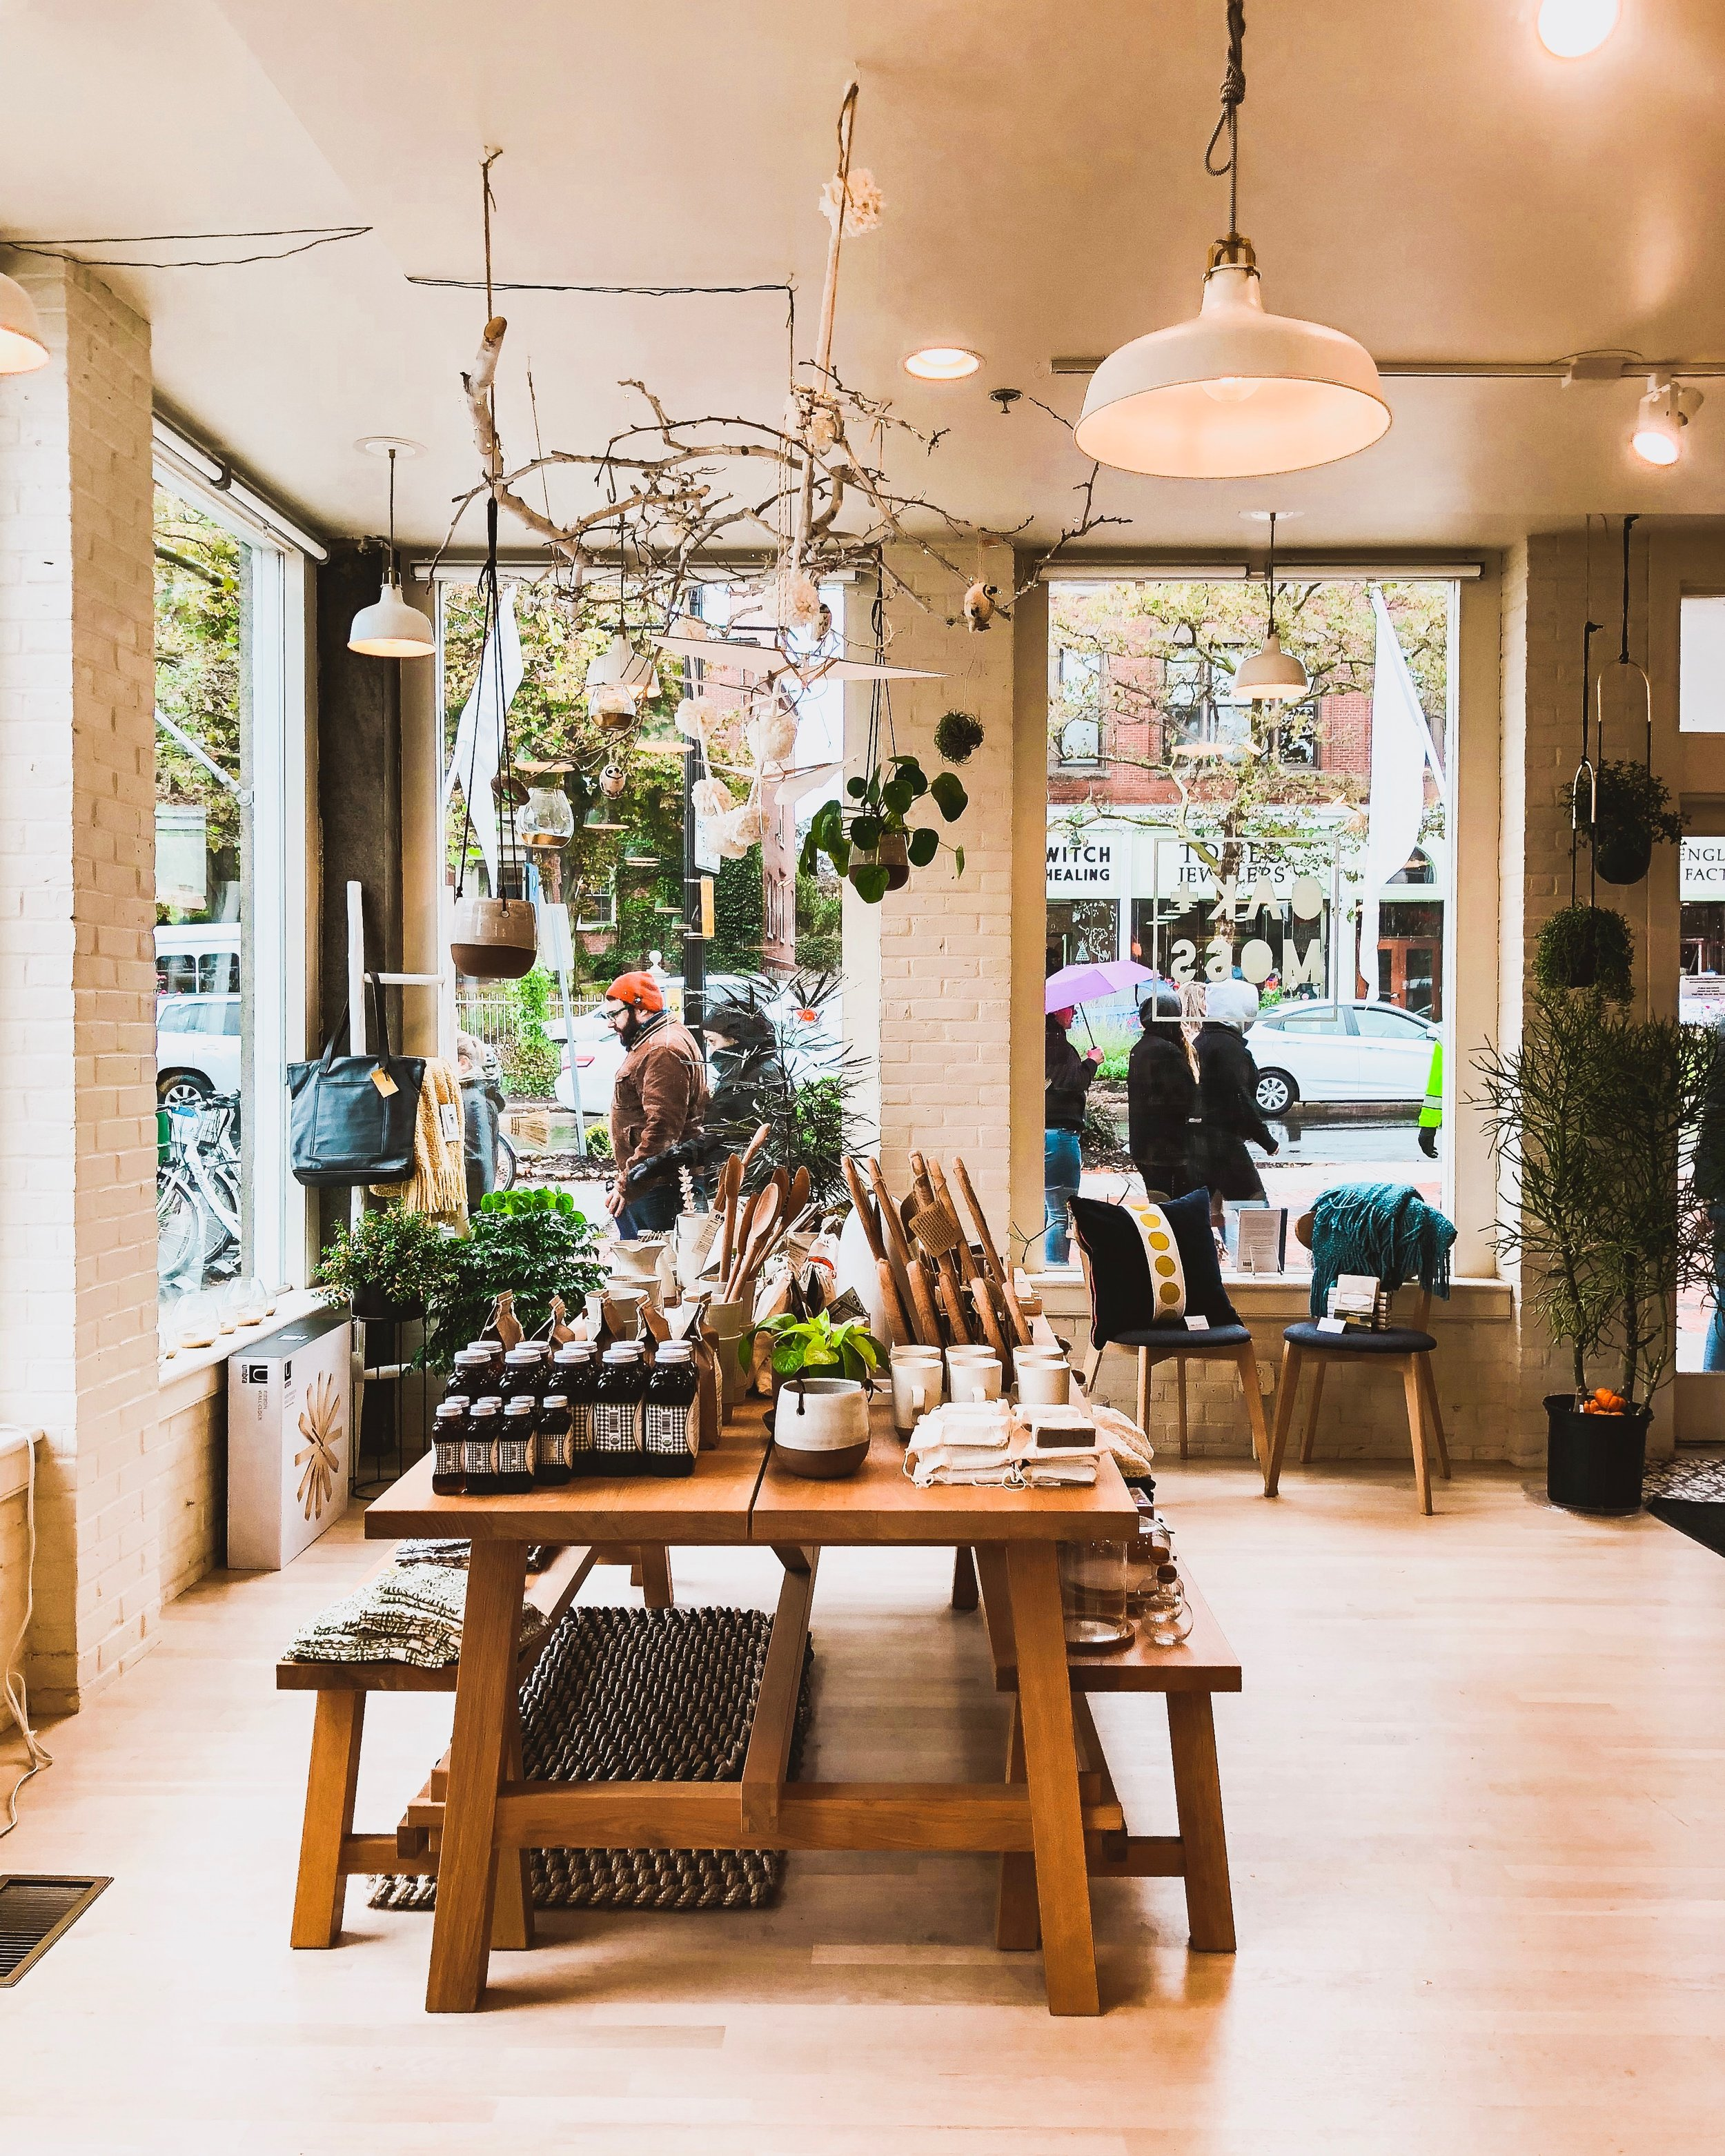 Salem, Massachusetts Travel Guide: OAK + MOSS Shop